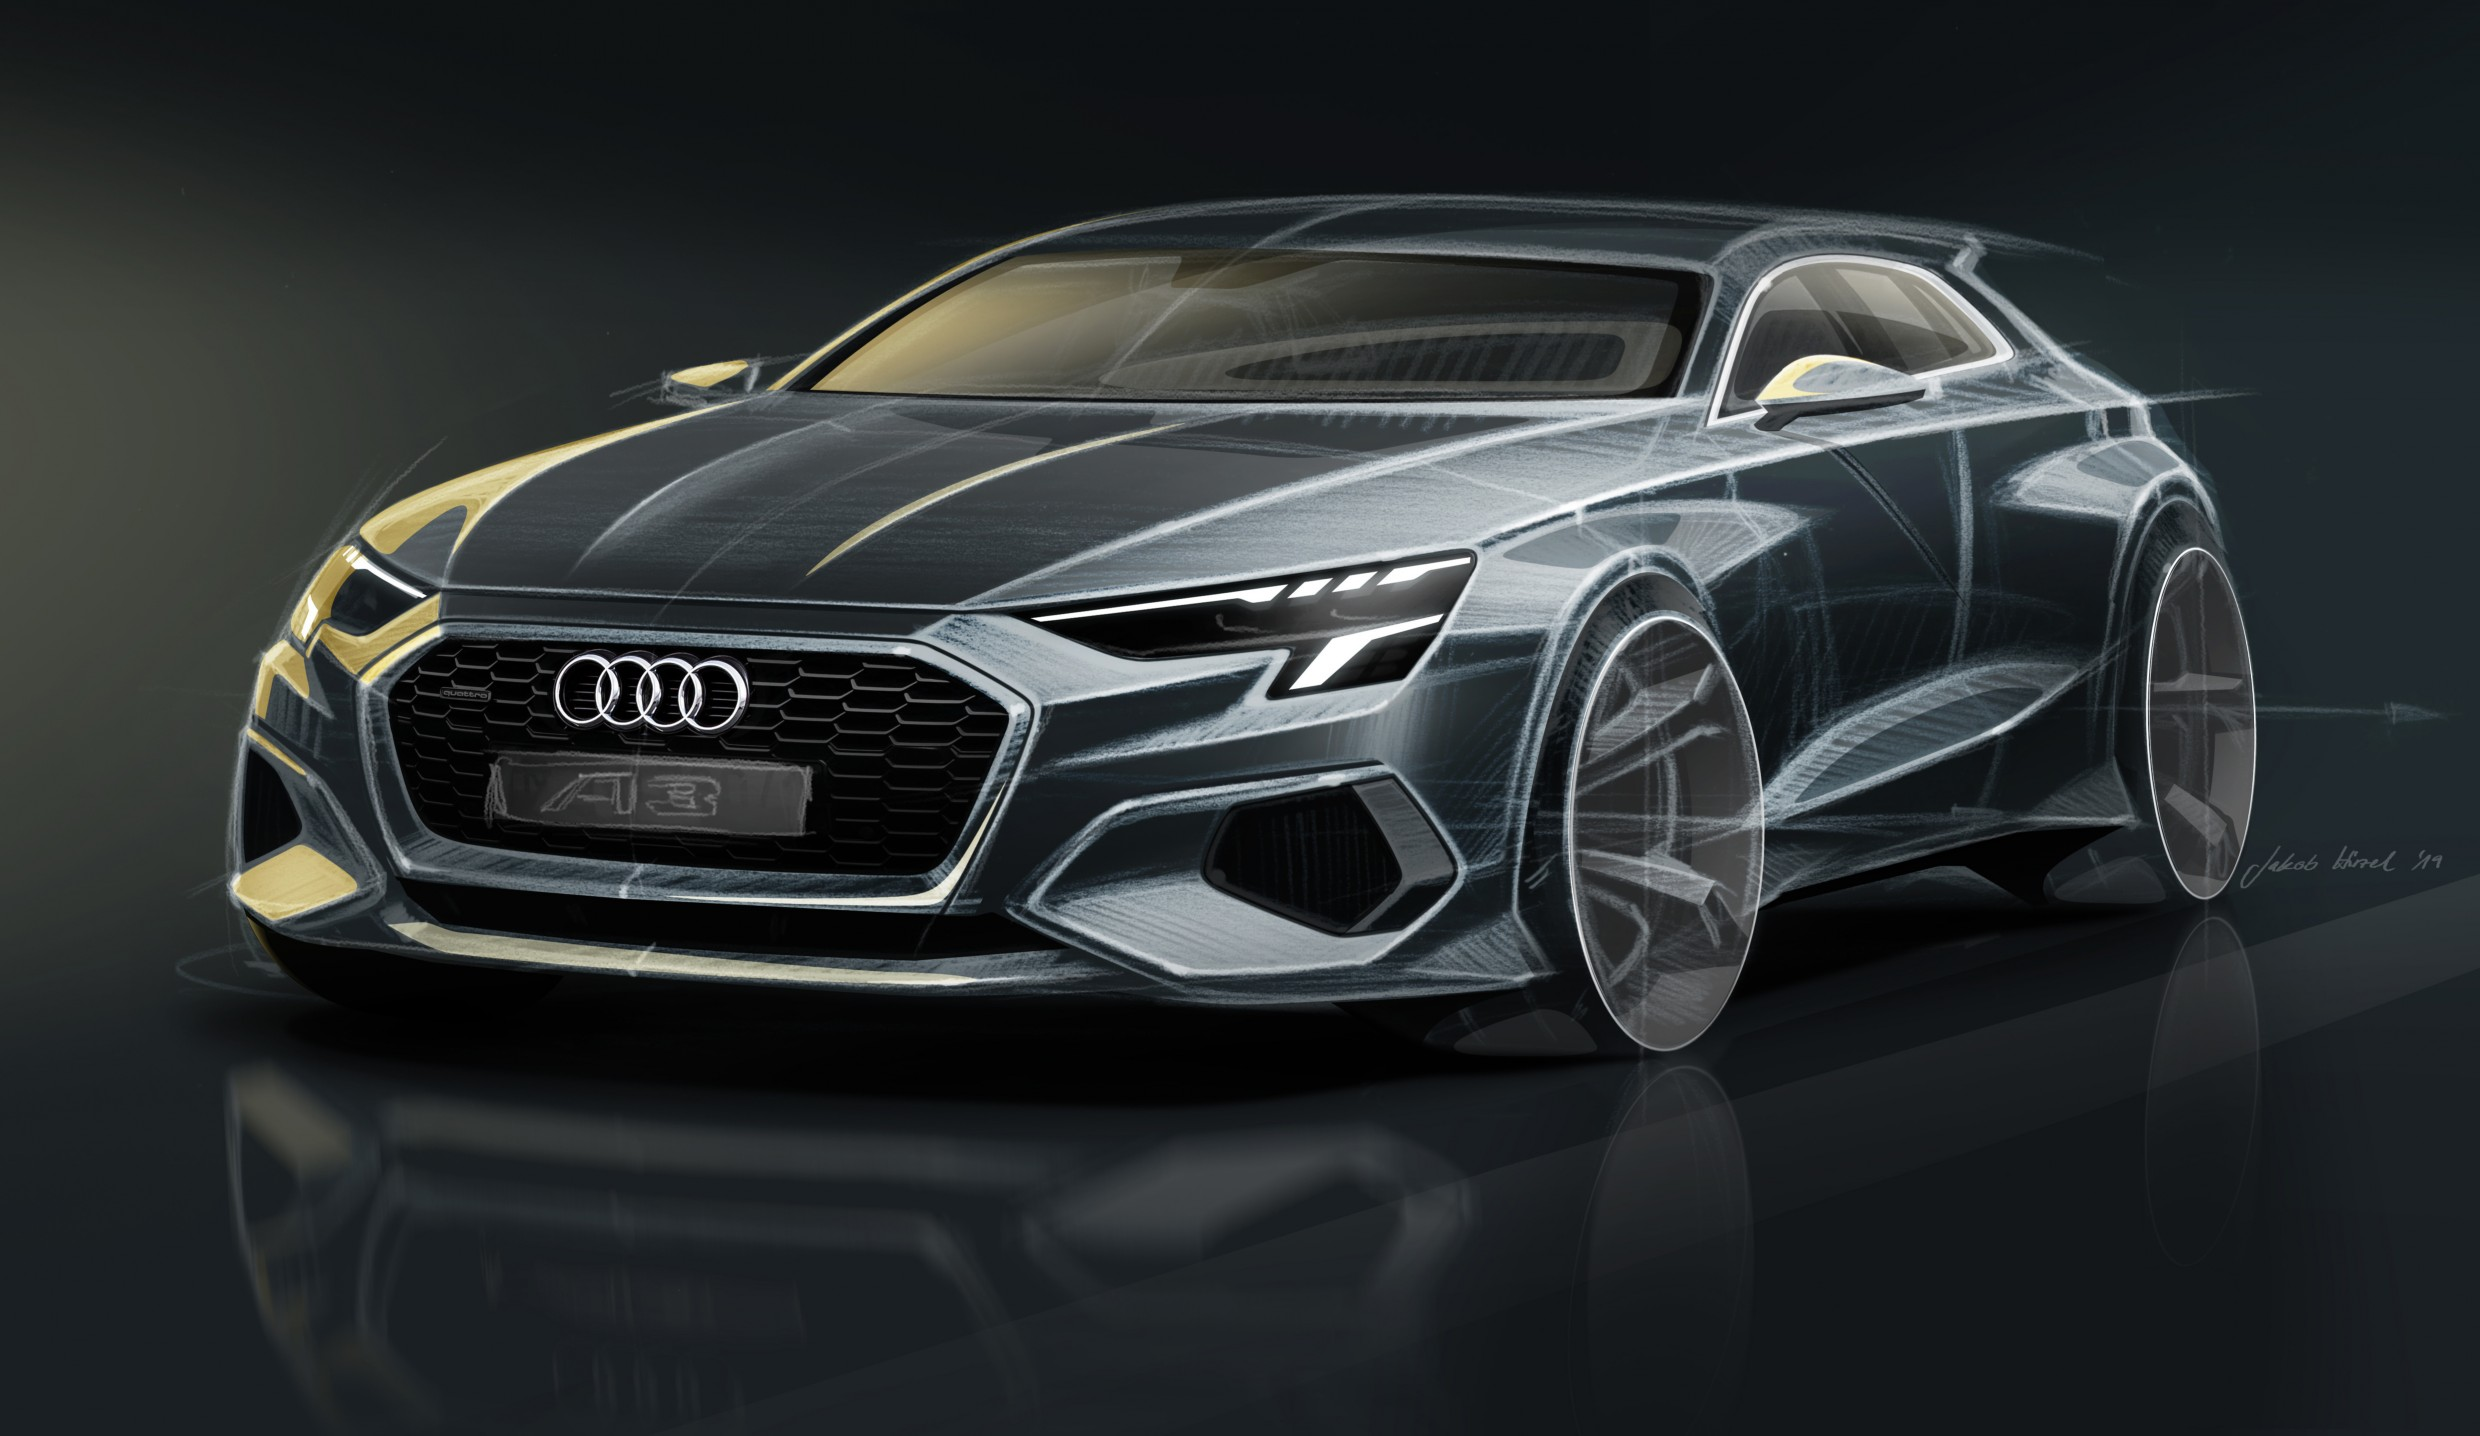 Tour the design laboratory of Audi online with Insight Audi Design medium